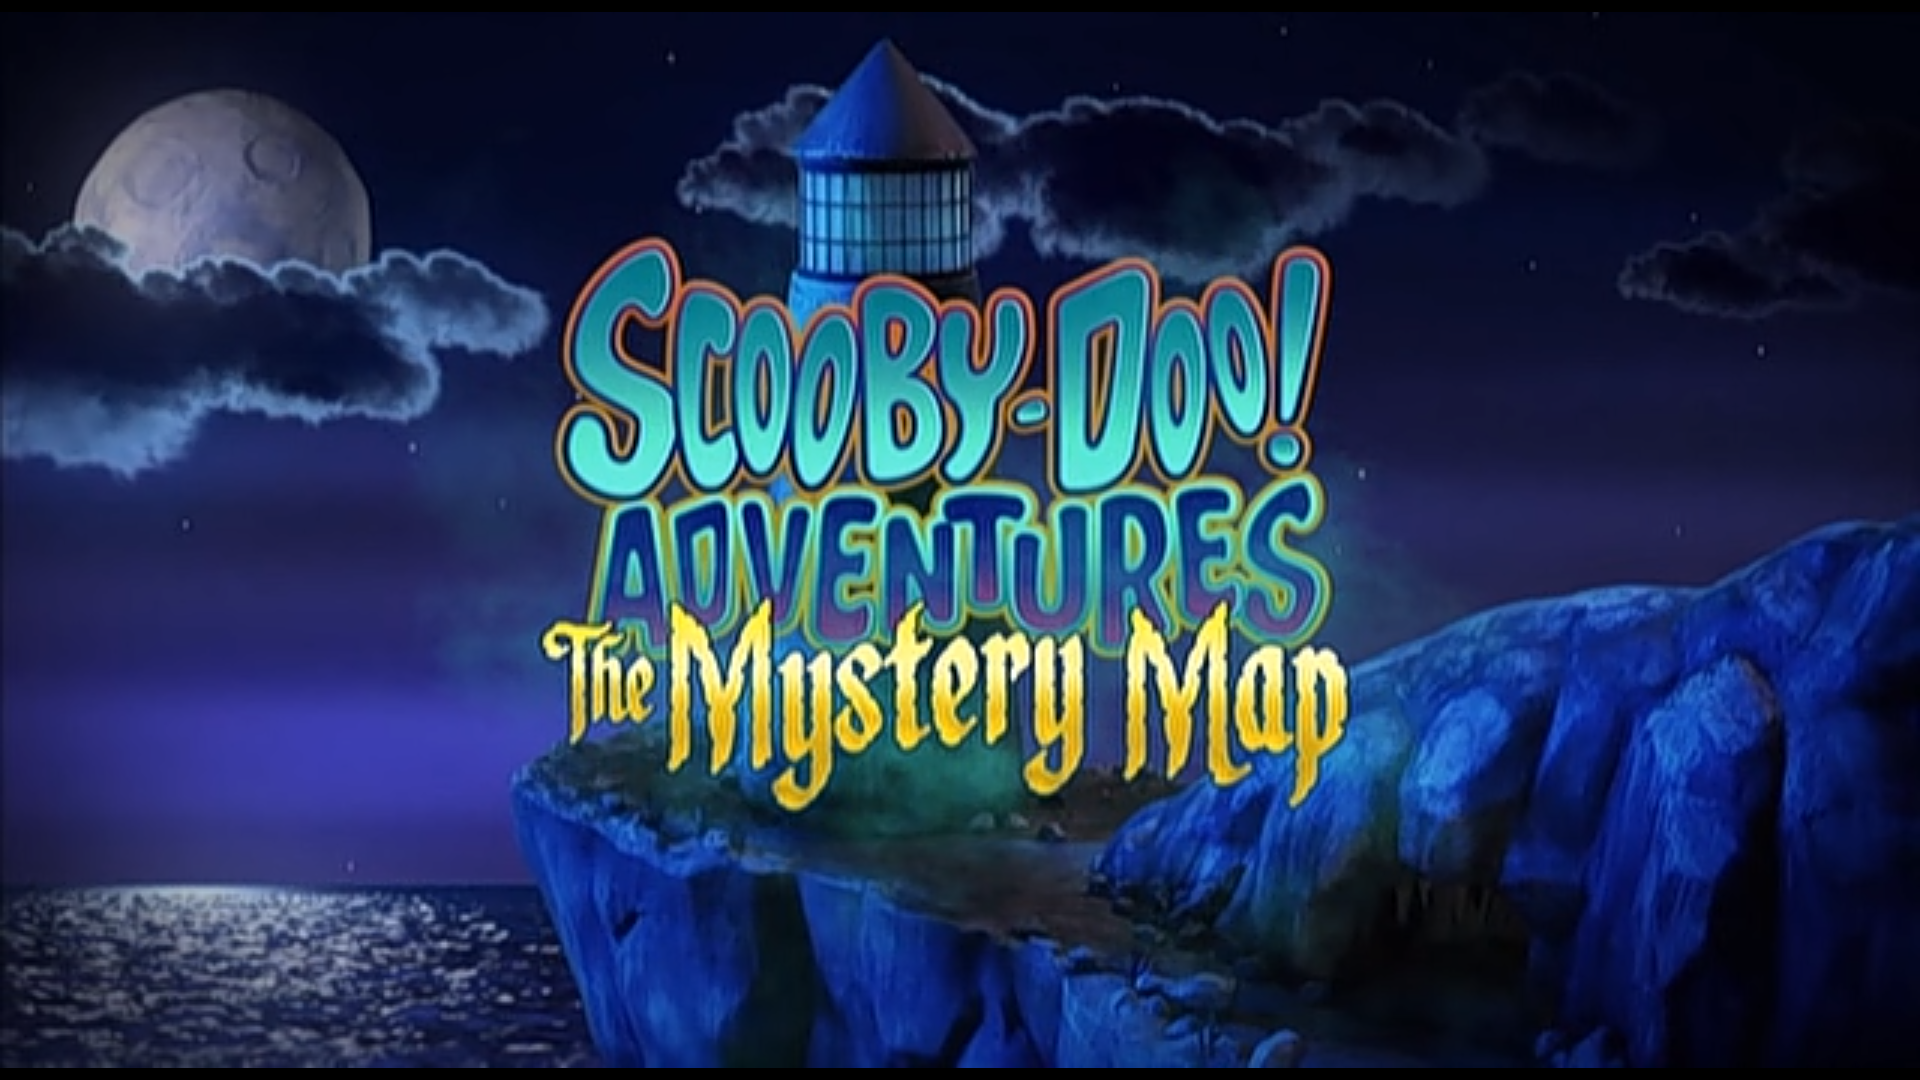 Scooby-Doo! Adventures: The Mystery Map | Logopedia | FANDOM ... on scooby doo greatest mysteries vhs, scooby doo logo, scooby doo green ghost, scooby doo mystery adventures, scooby doo red beard, scooby doo mystery mansion, scooby doo mystery sega genesis, scooby doo games, scooby doo dvd, scooby doo and the cyber chase, scooby doo unmasked,